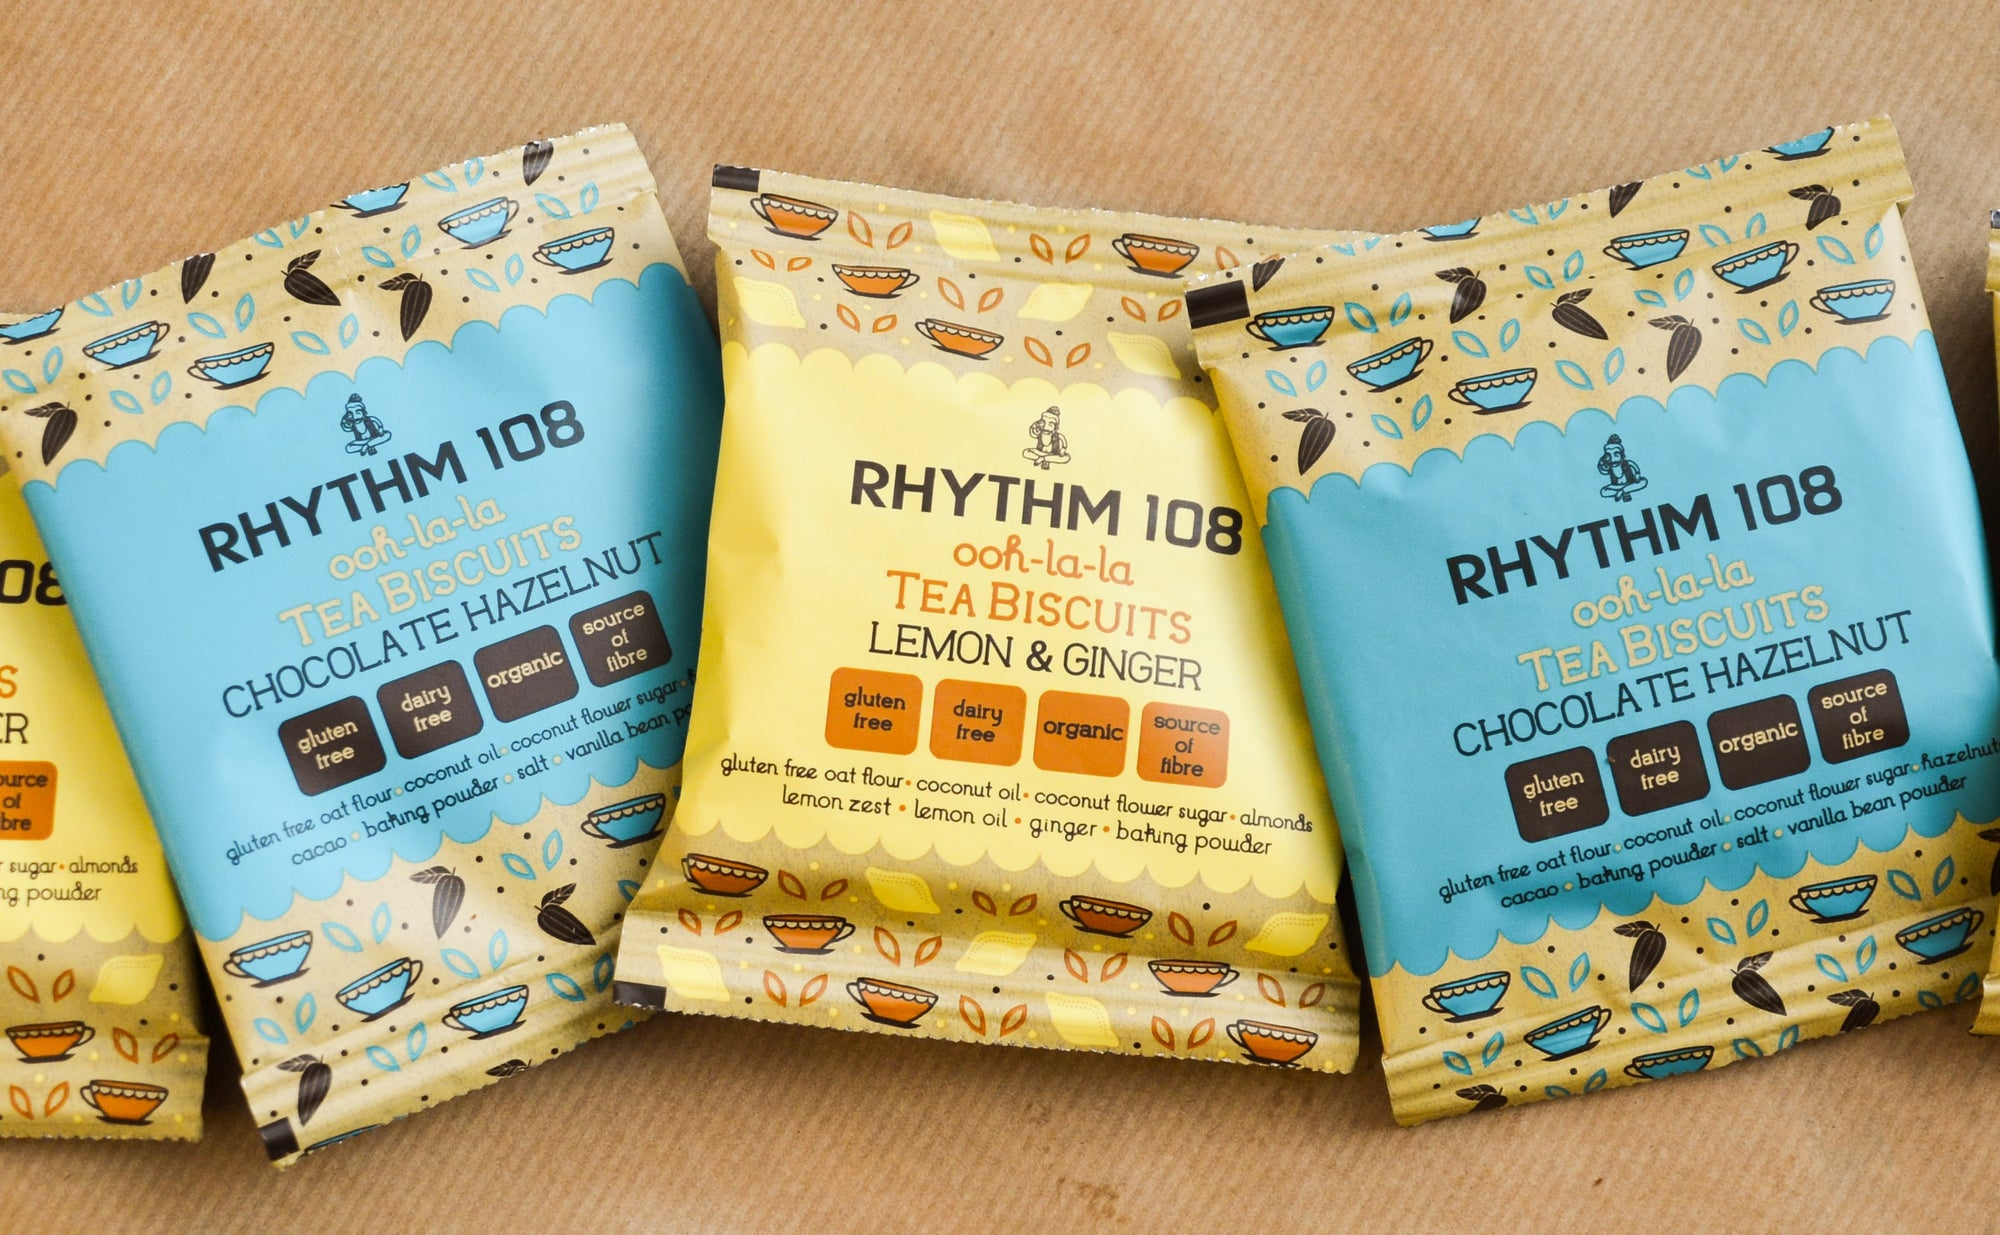 Supplier Spotlight: Rhythm108